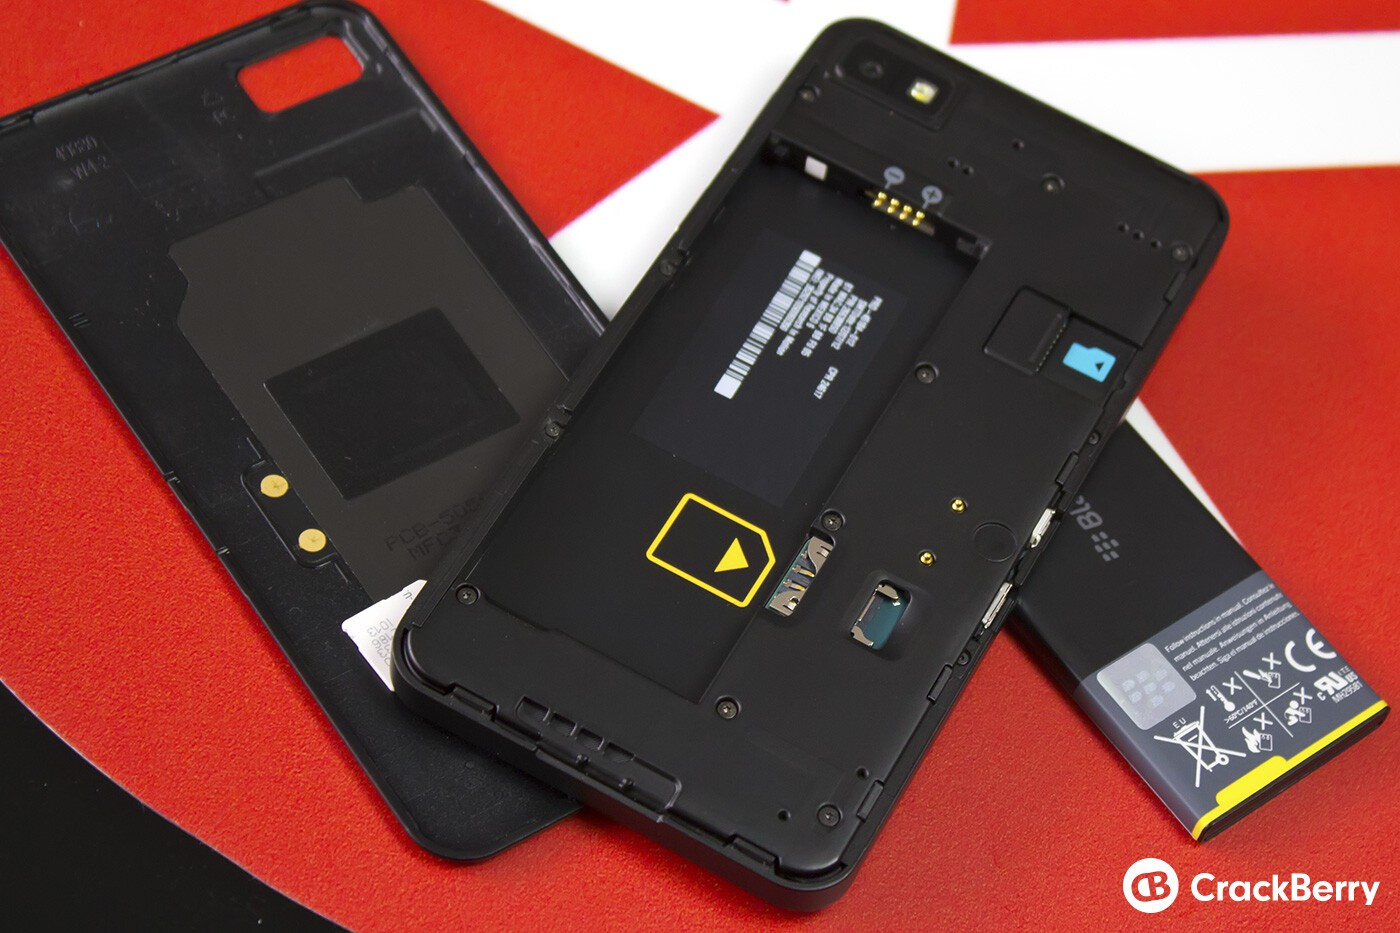 BlackBerry Z10 with battery removed